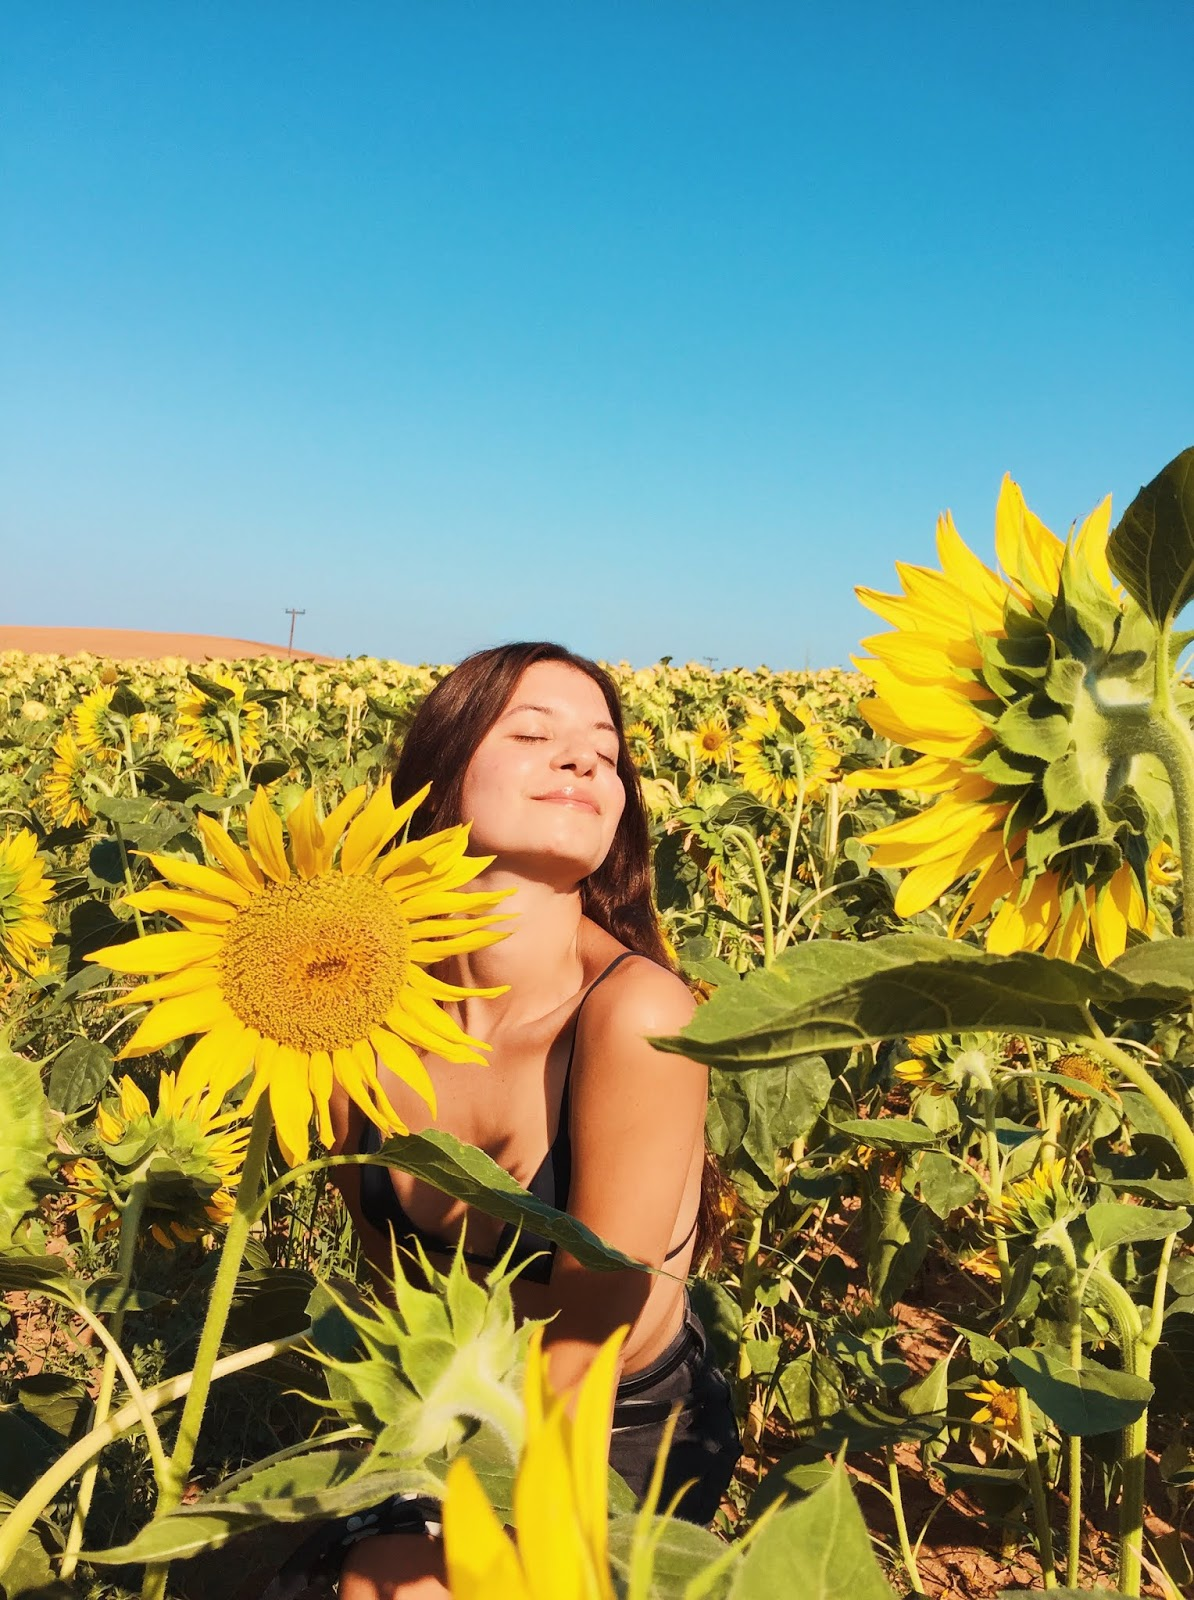 the girl named love, love improchori, sunflowers, field, hair scarf, summer, greece, flowers